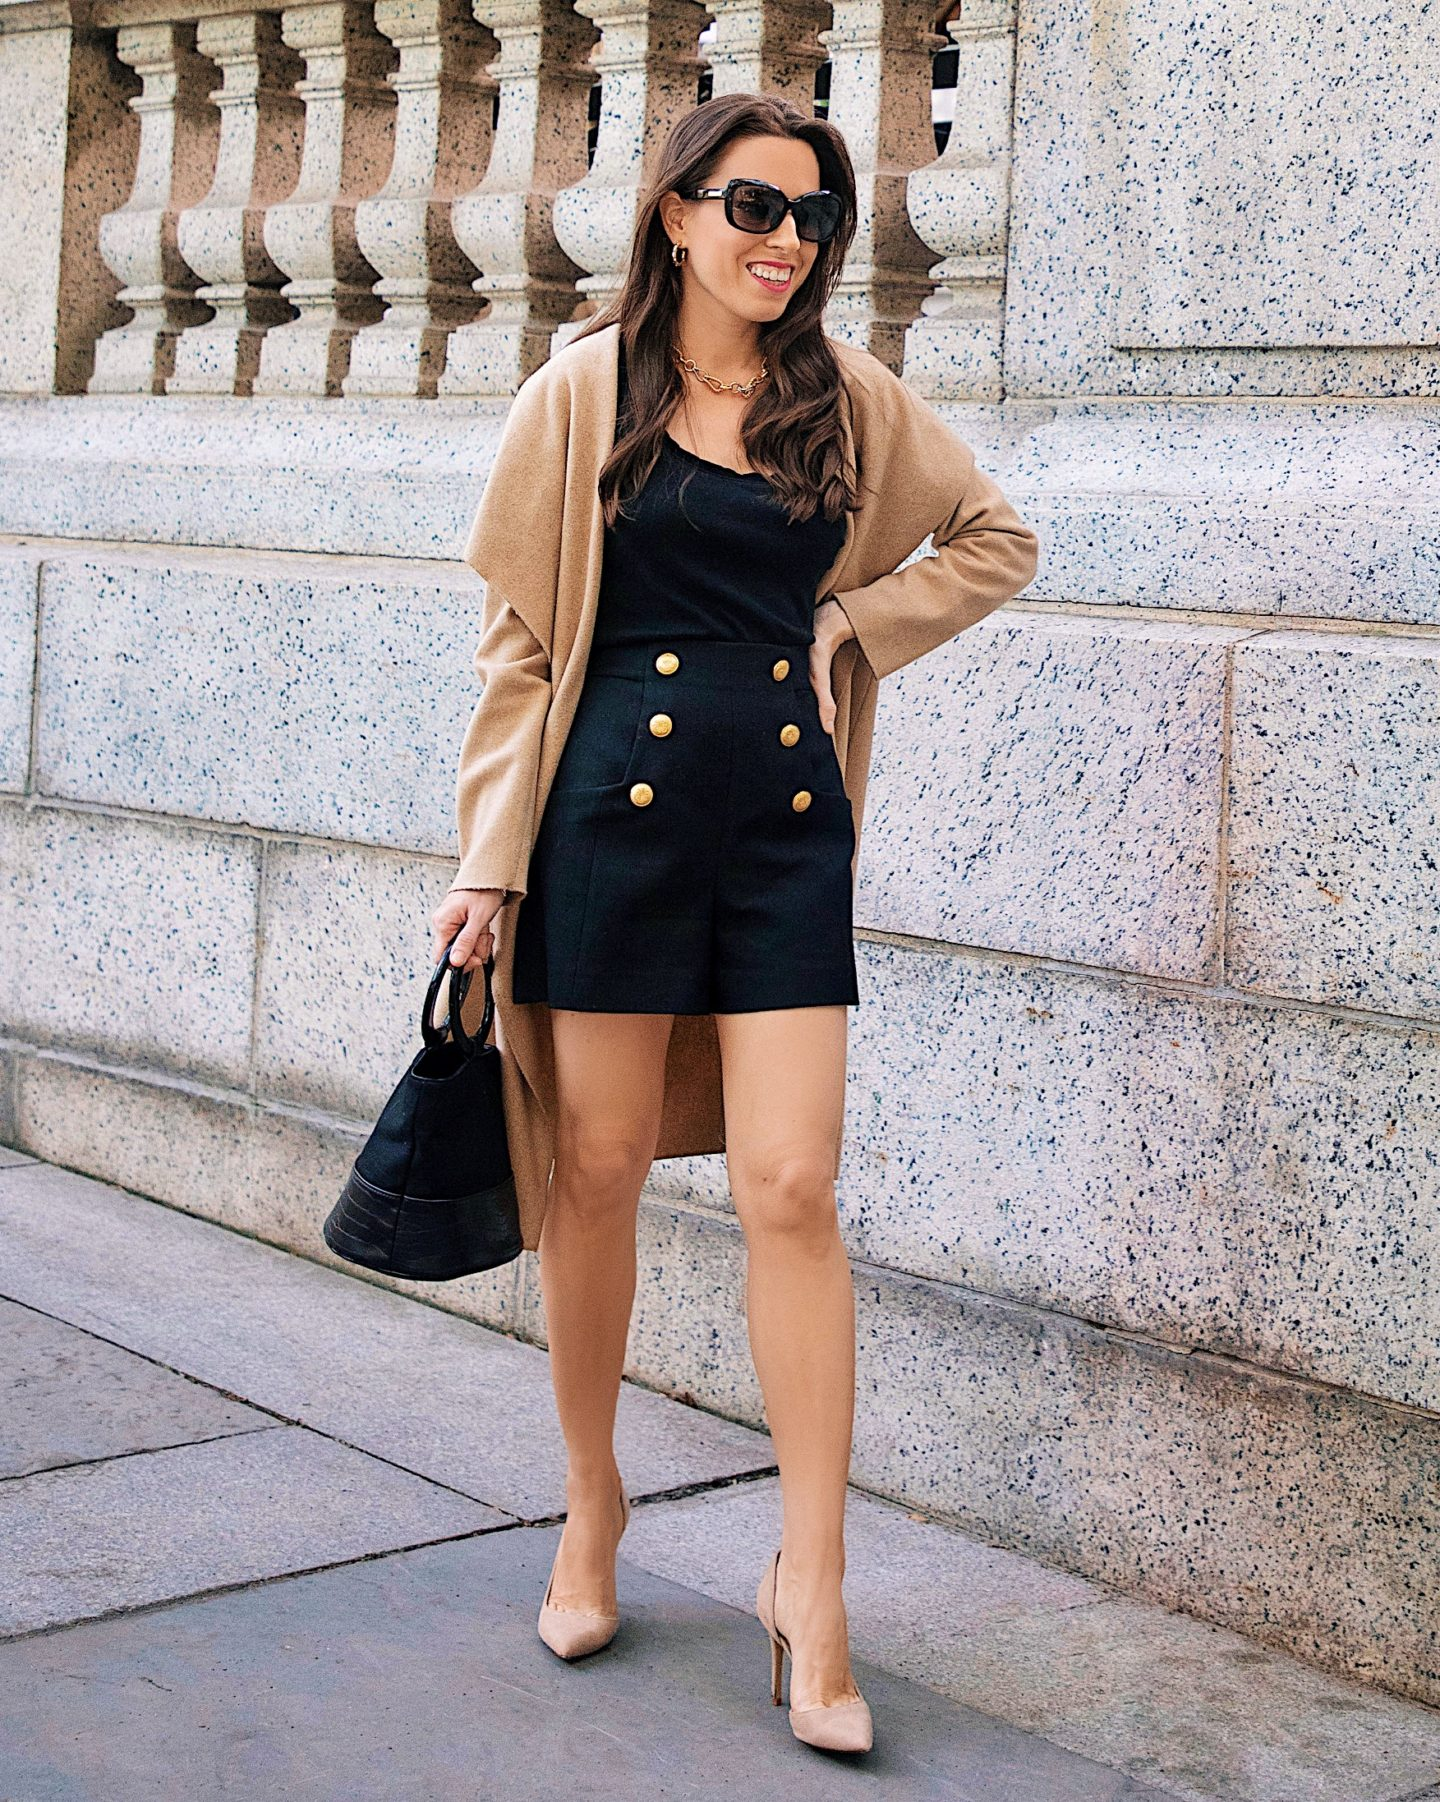 Ana Florentina wearing fall look featuring an open front wool blend coat black shorts with gold buttons